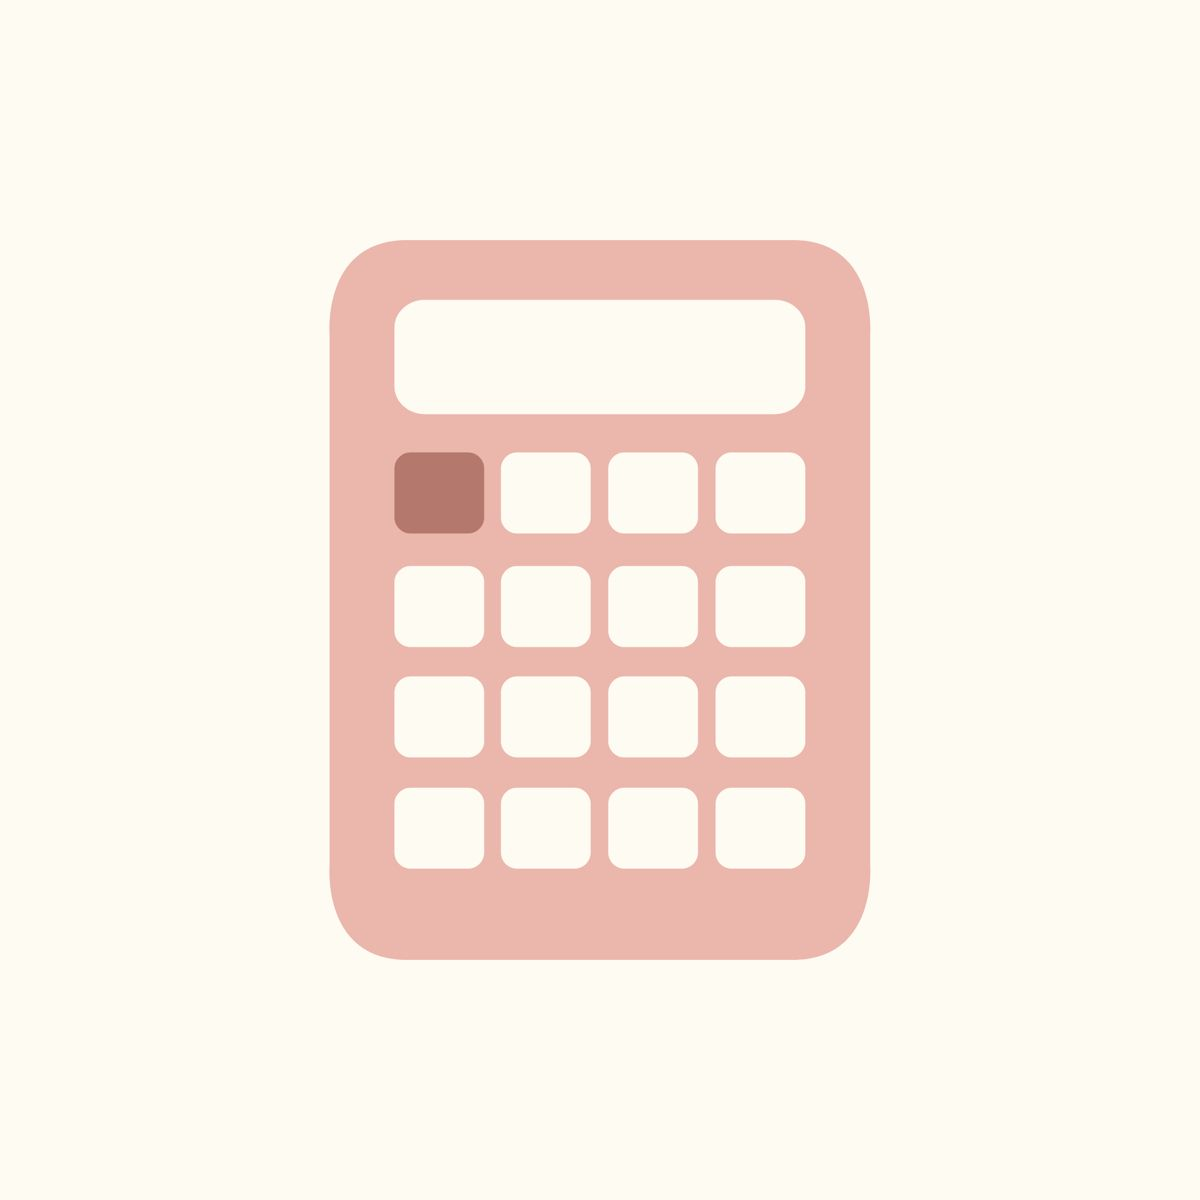 Calculator App Icon App Icon Calculator App Wallpaper App